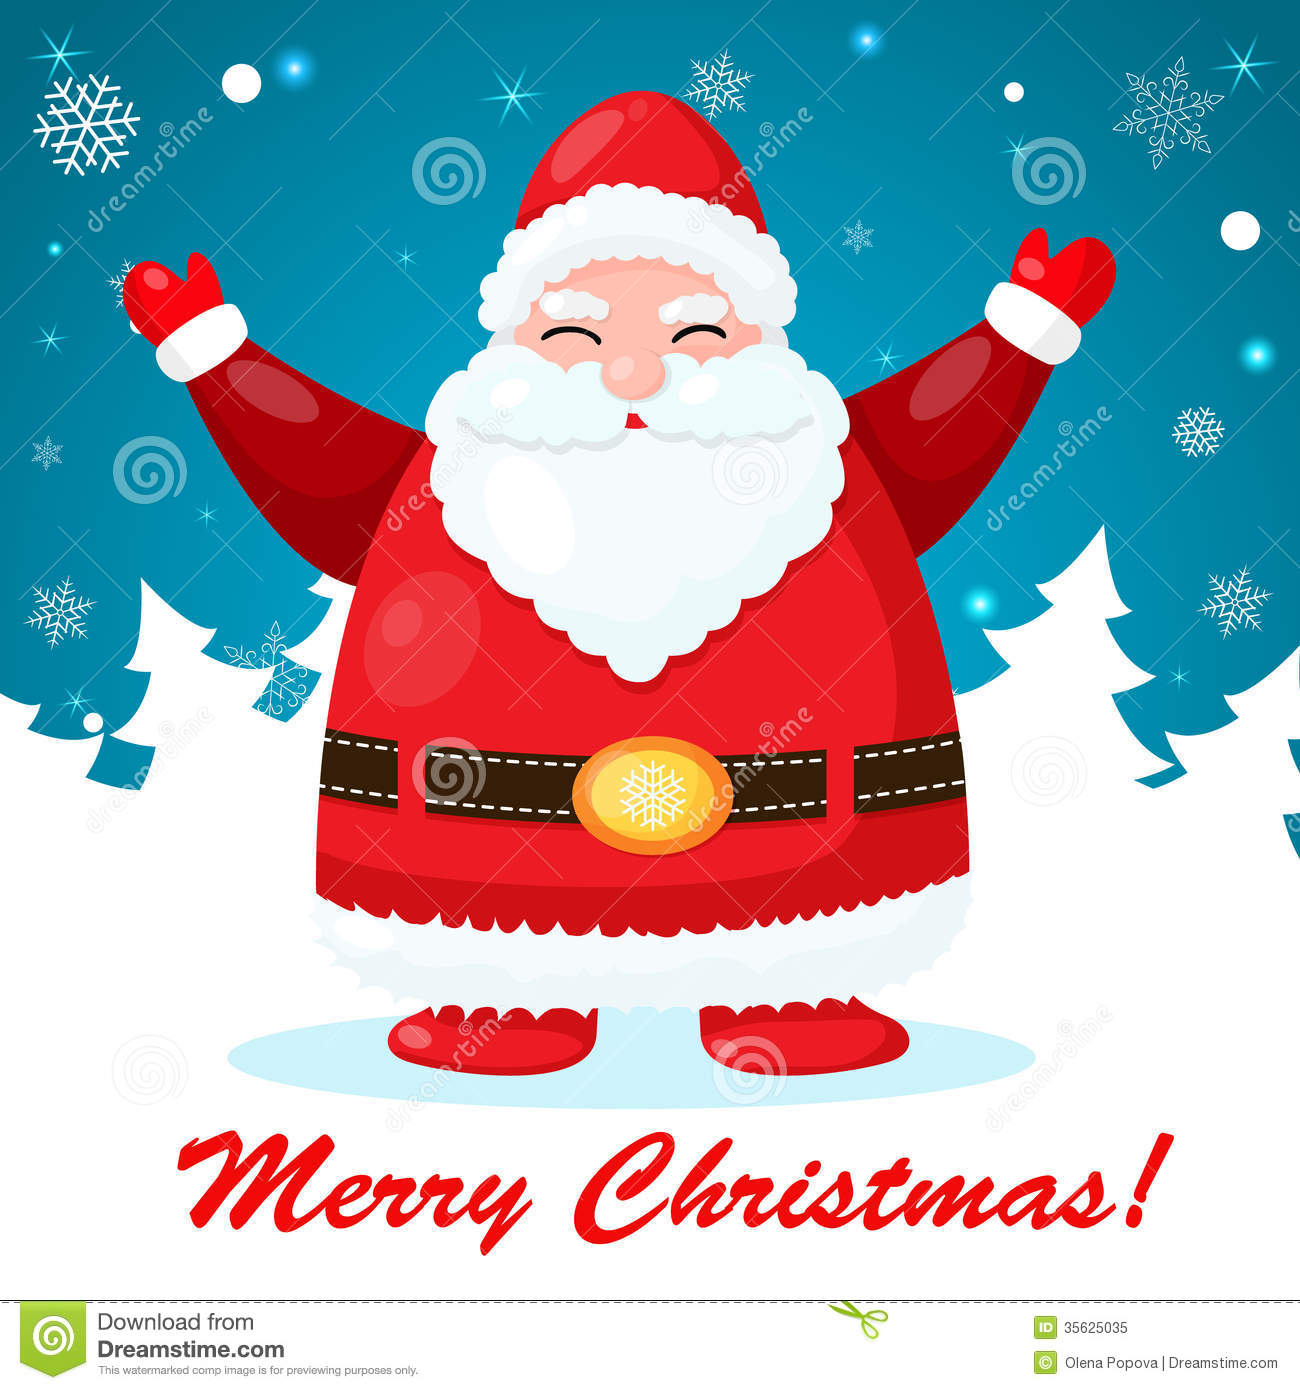 Funny And Cute Christmas Card With Santa Royalty Free Stock Photo ...